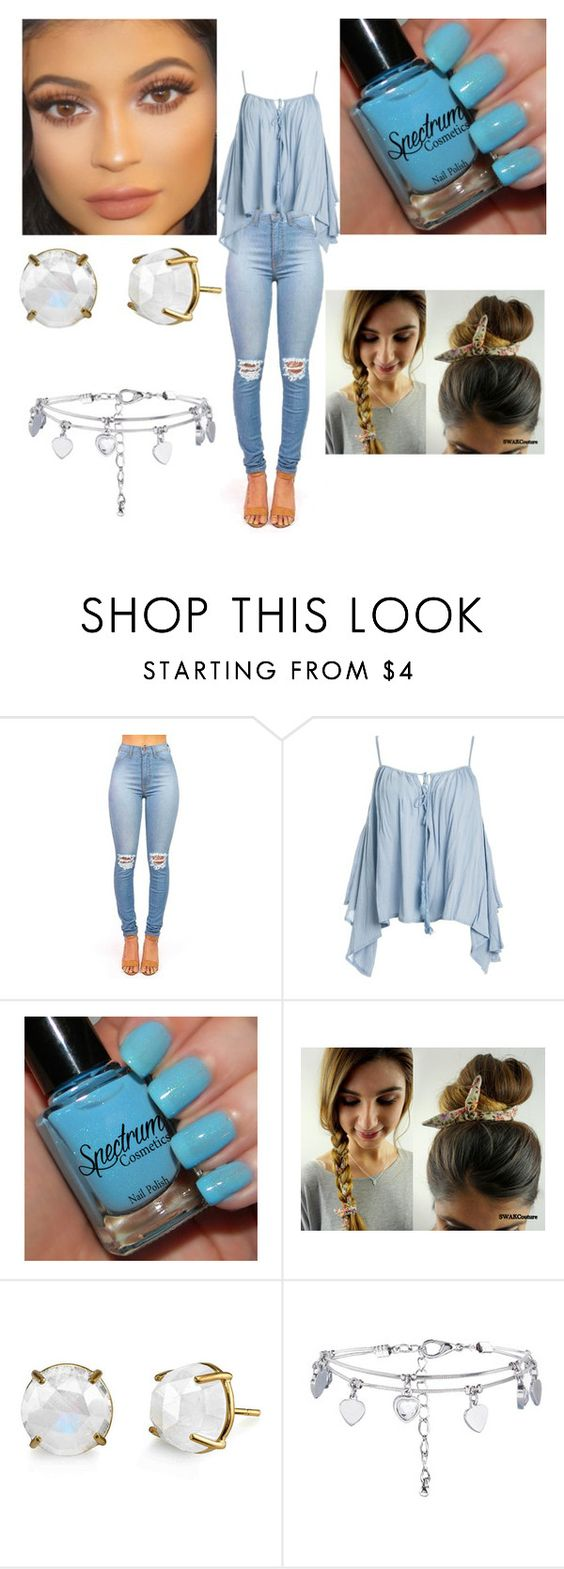 """Untitled #236"" by taliar992 ❤ liked on Polyvore featuring Sans Souci, women's clothing, women, female, woman, misses and juniors"